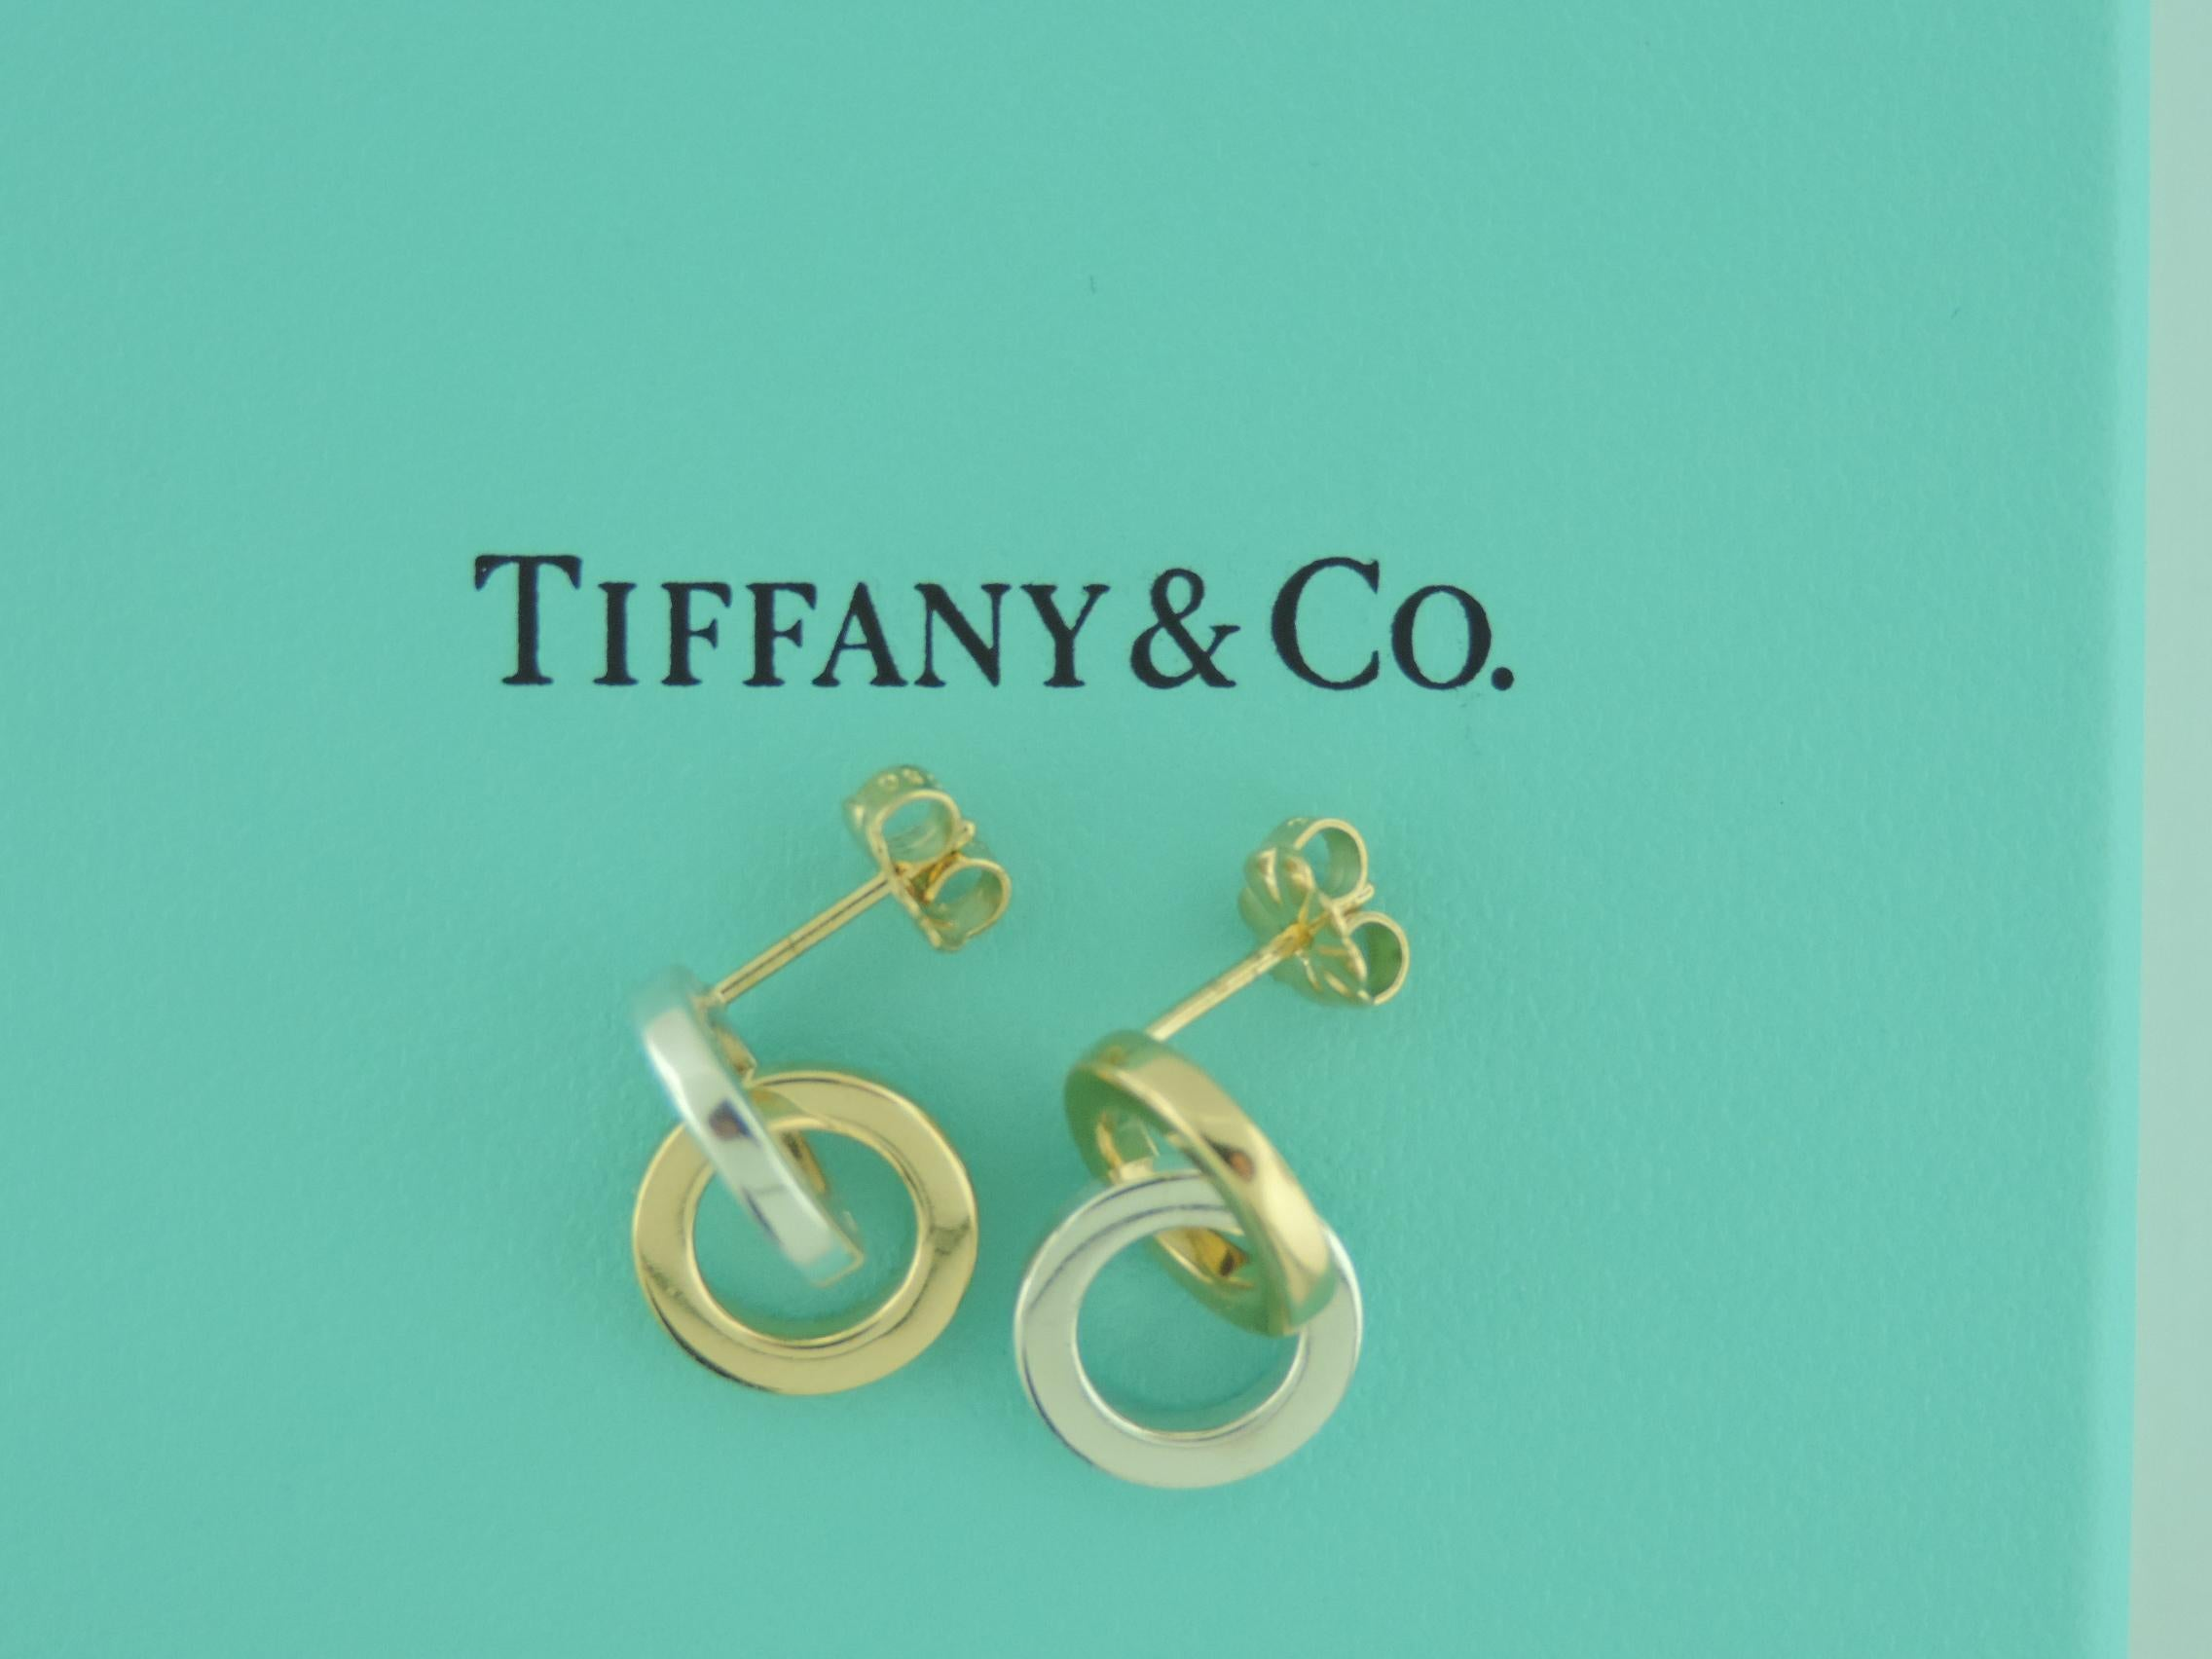 8fa7649f6 Tiffany and Co. Double Circle Two-Tone 18 Karat Gold and Sterling Silver  Earrings at 1stdibs